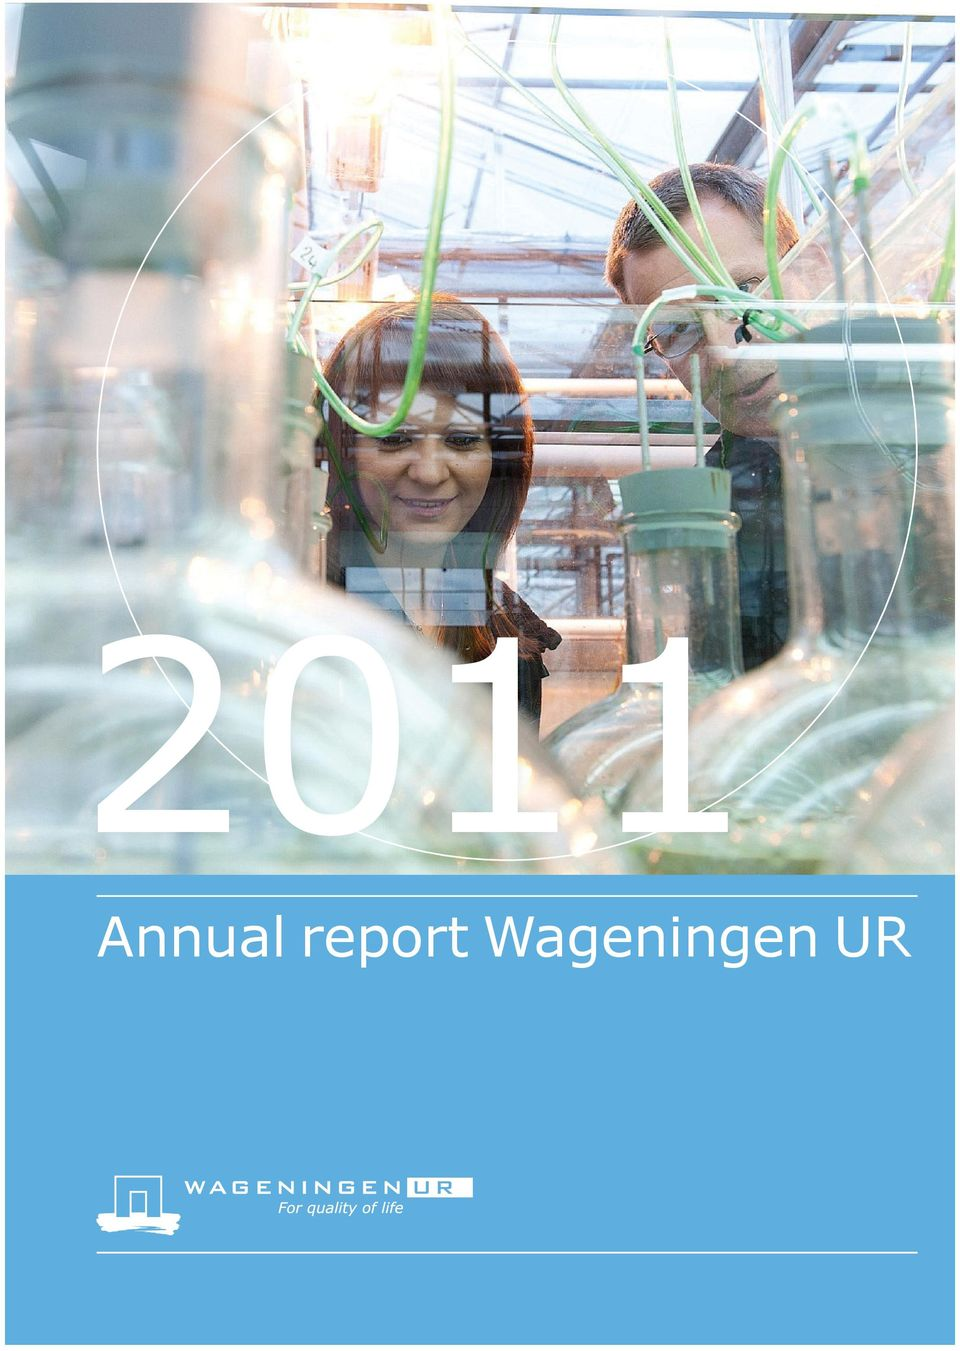 With approximately 40 locations (in the Netherlands, Brazil and China), 6,500 members of staff and 10,000 students, Wageningen UR is one of the leading organisations in its domain worldwide.